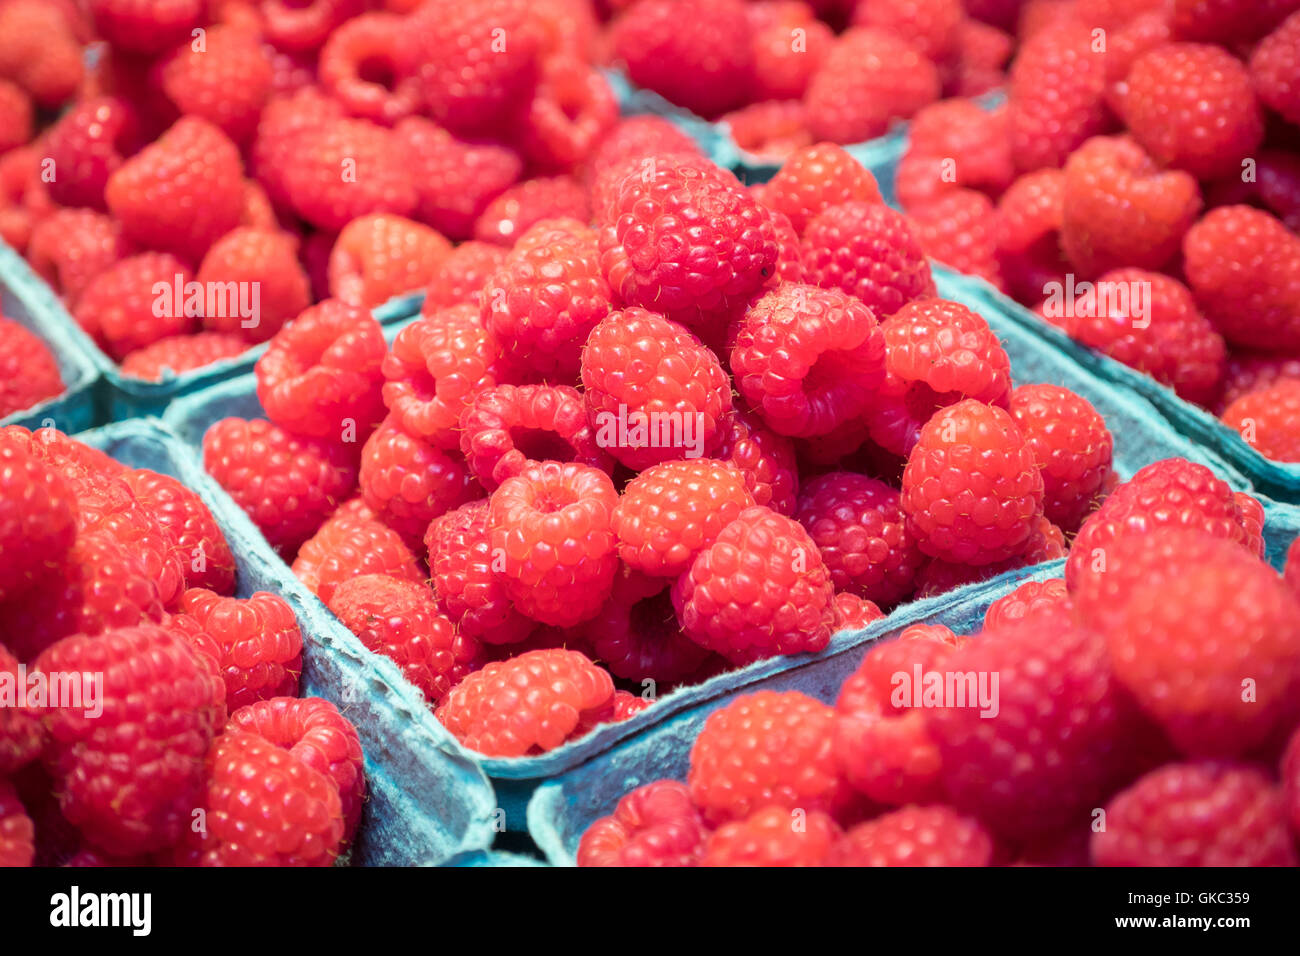 Punnets of fresh raspberries for sale at Granville Island Public Market in Vancouver, British Columbia, Canada. - Stock Image